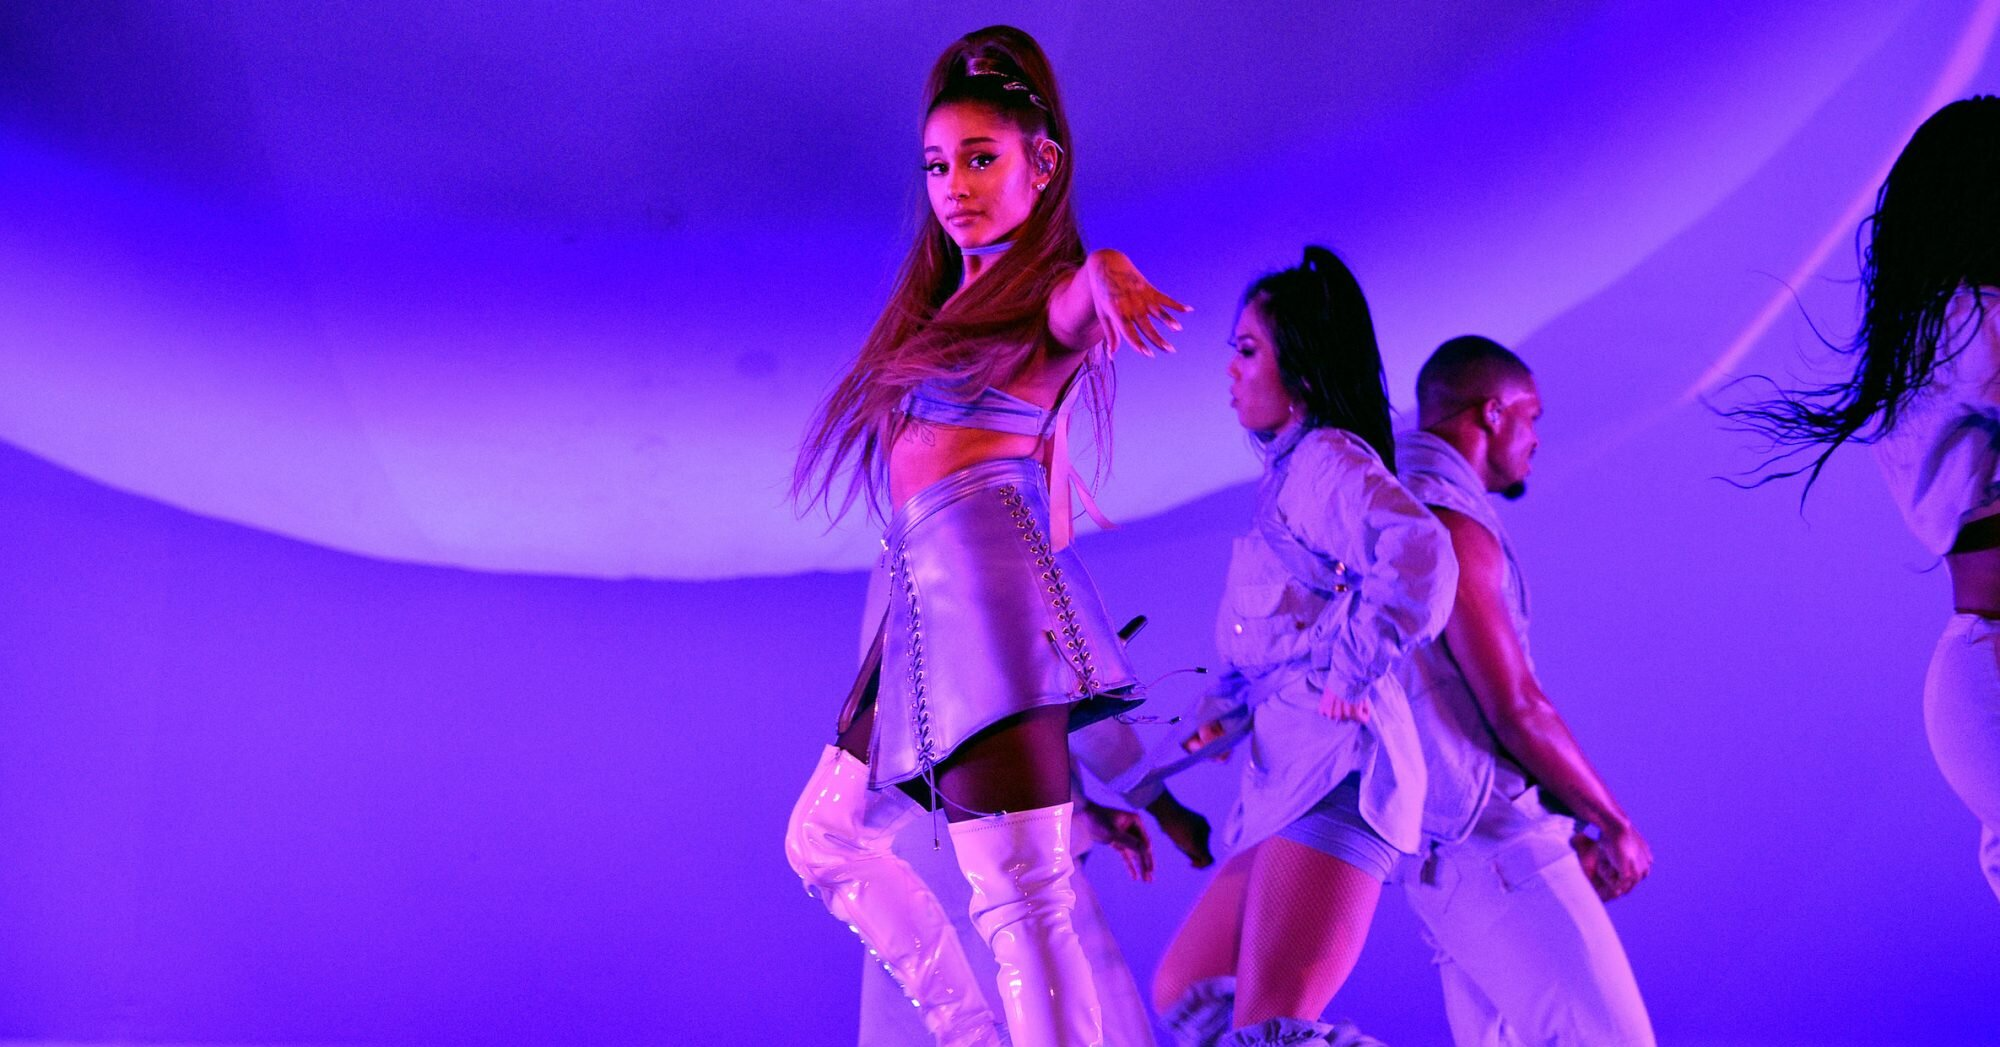 Ariana Grande Swears By These 5 Lower-Body Workouts, According to Her Trainer